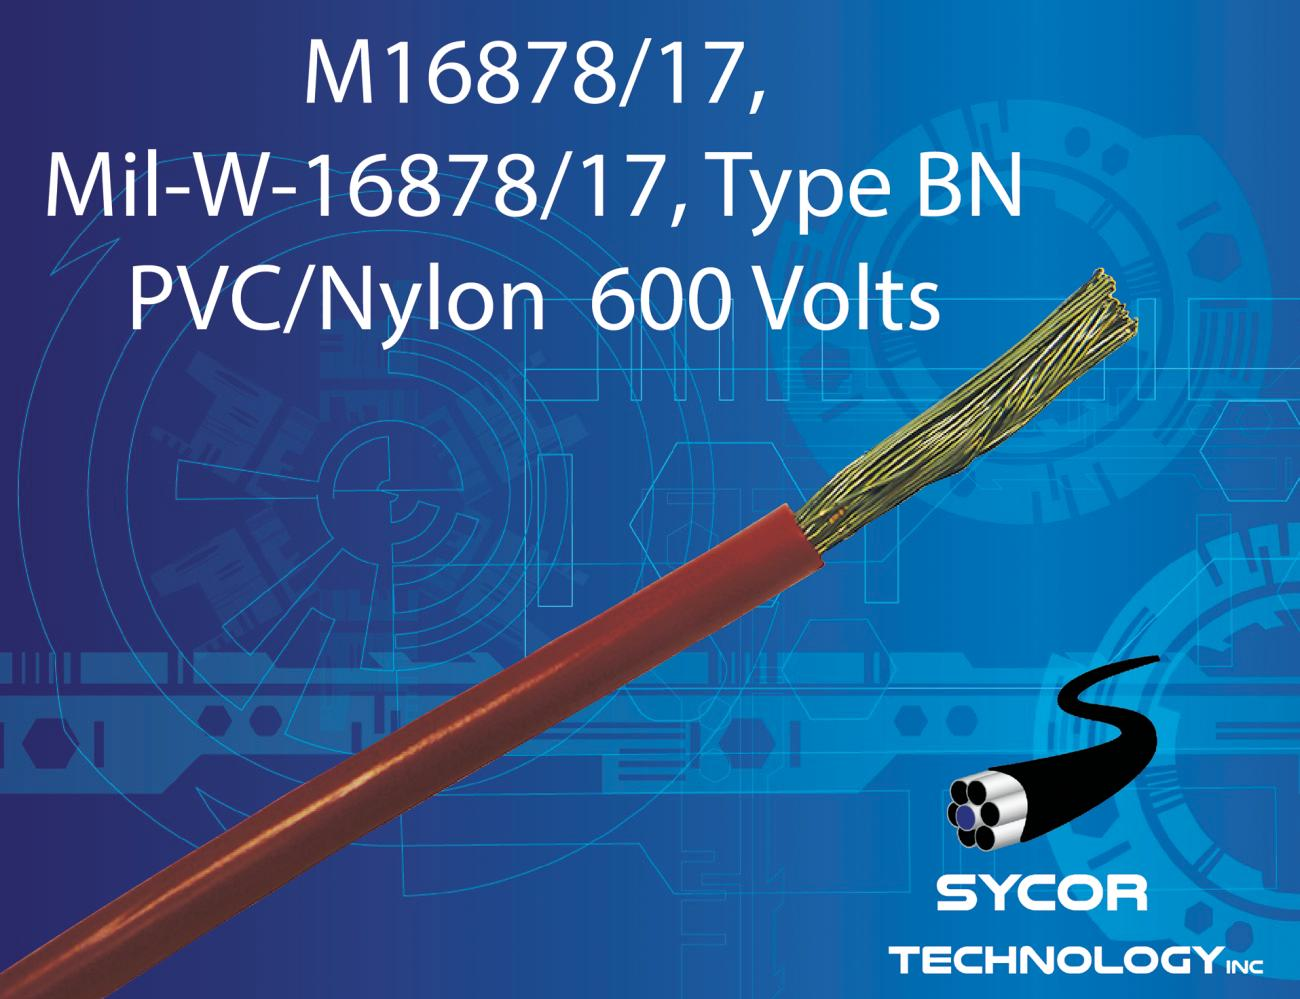 M16878/17, MIL-W-16878/17, Type BN, Mil-Spec Wire